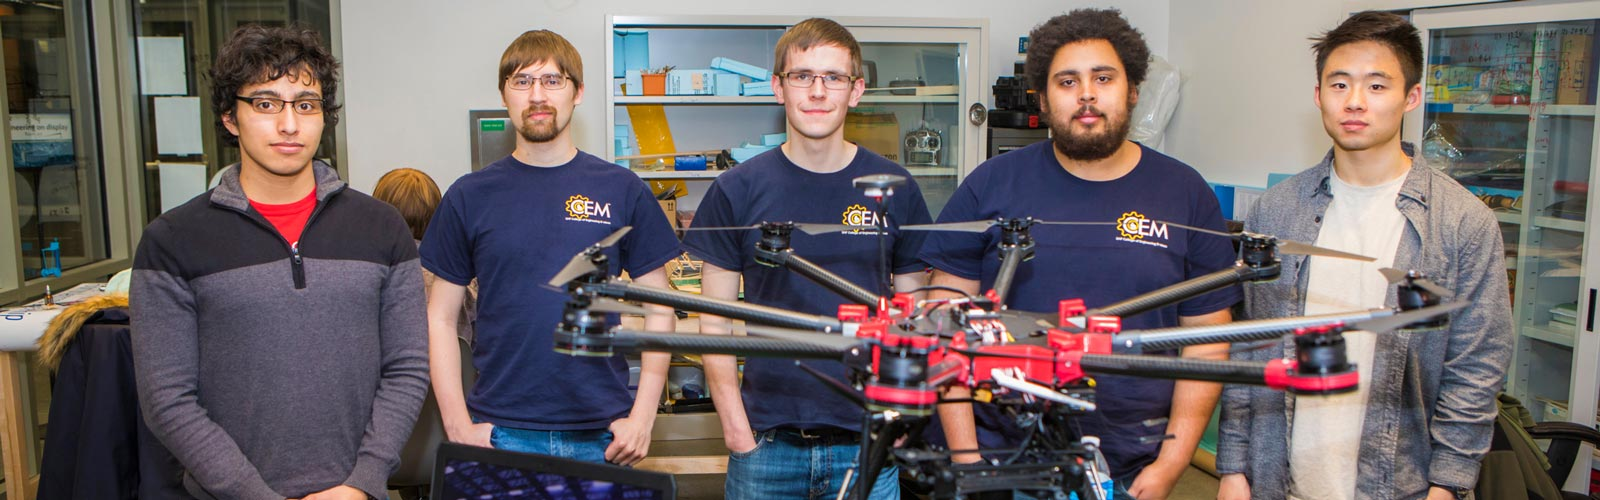 Students posing with their drone